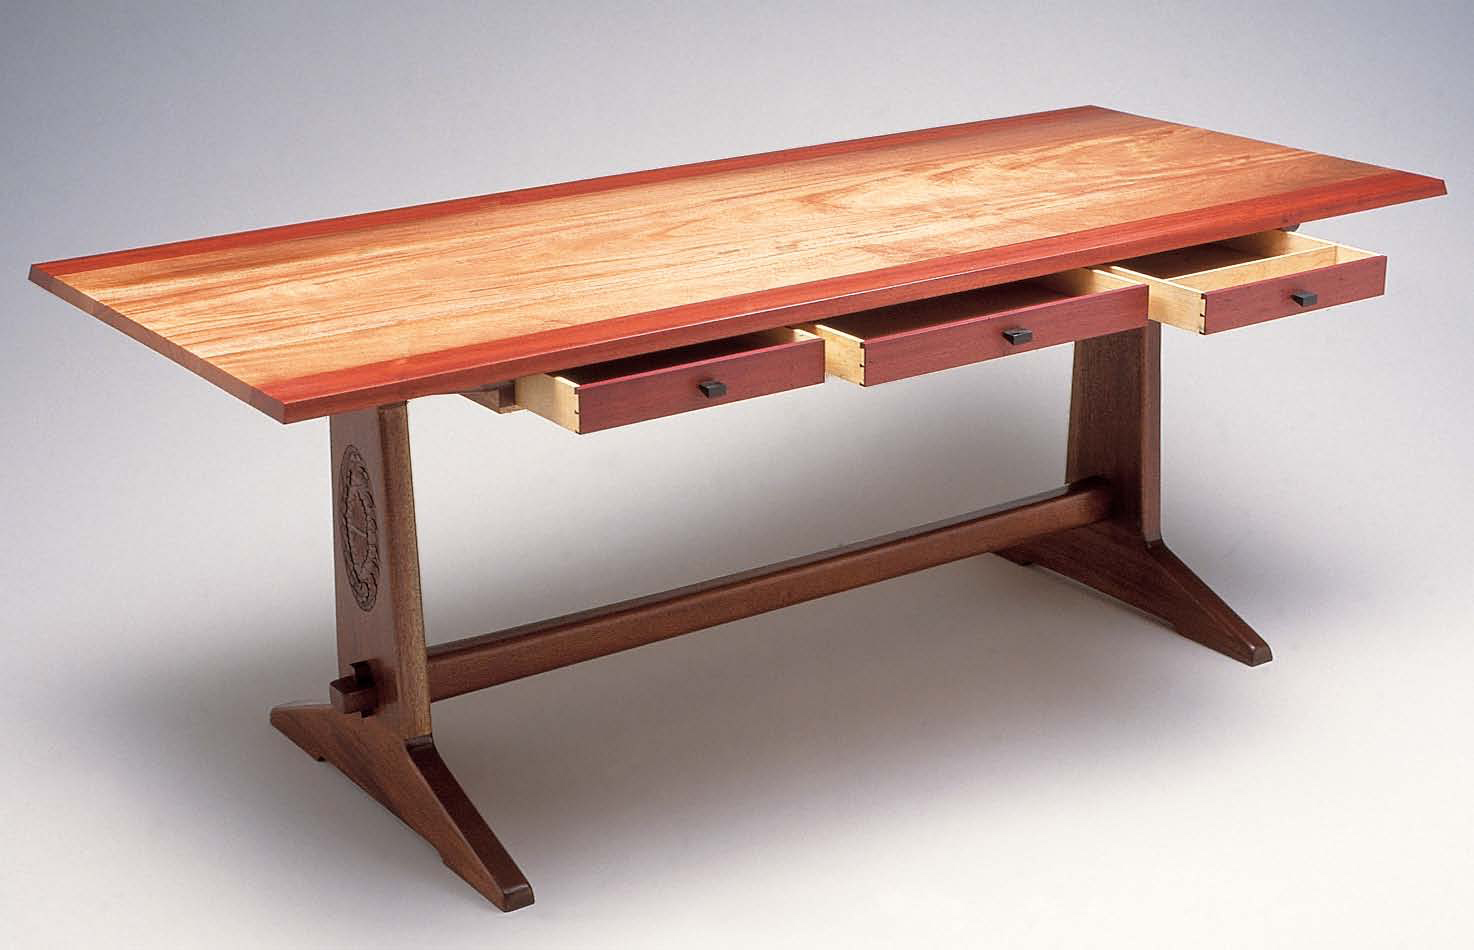 wooden furniture 1. design and build a diy trestle table FRPQIDC